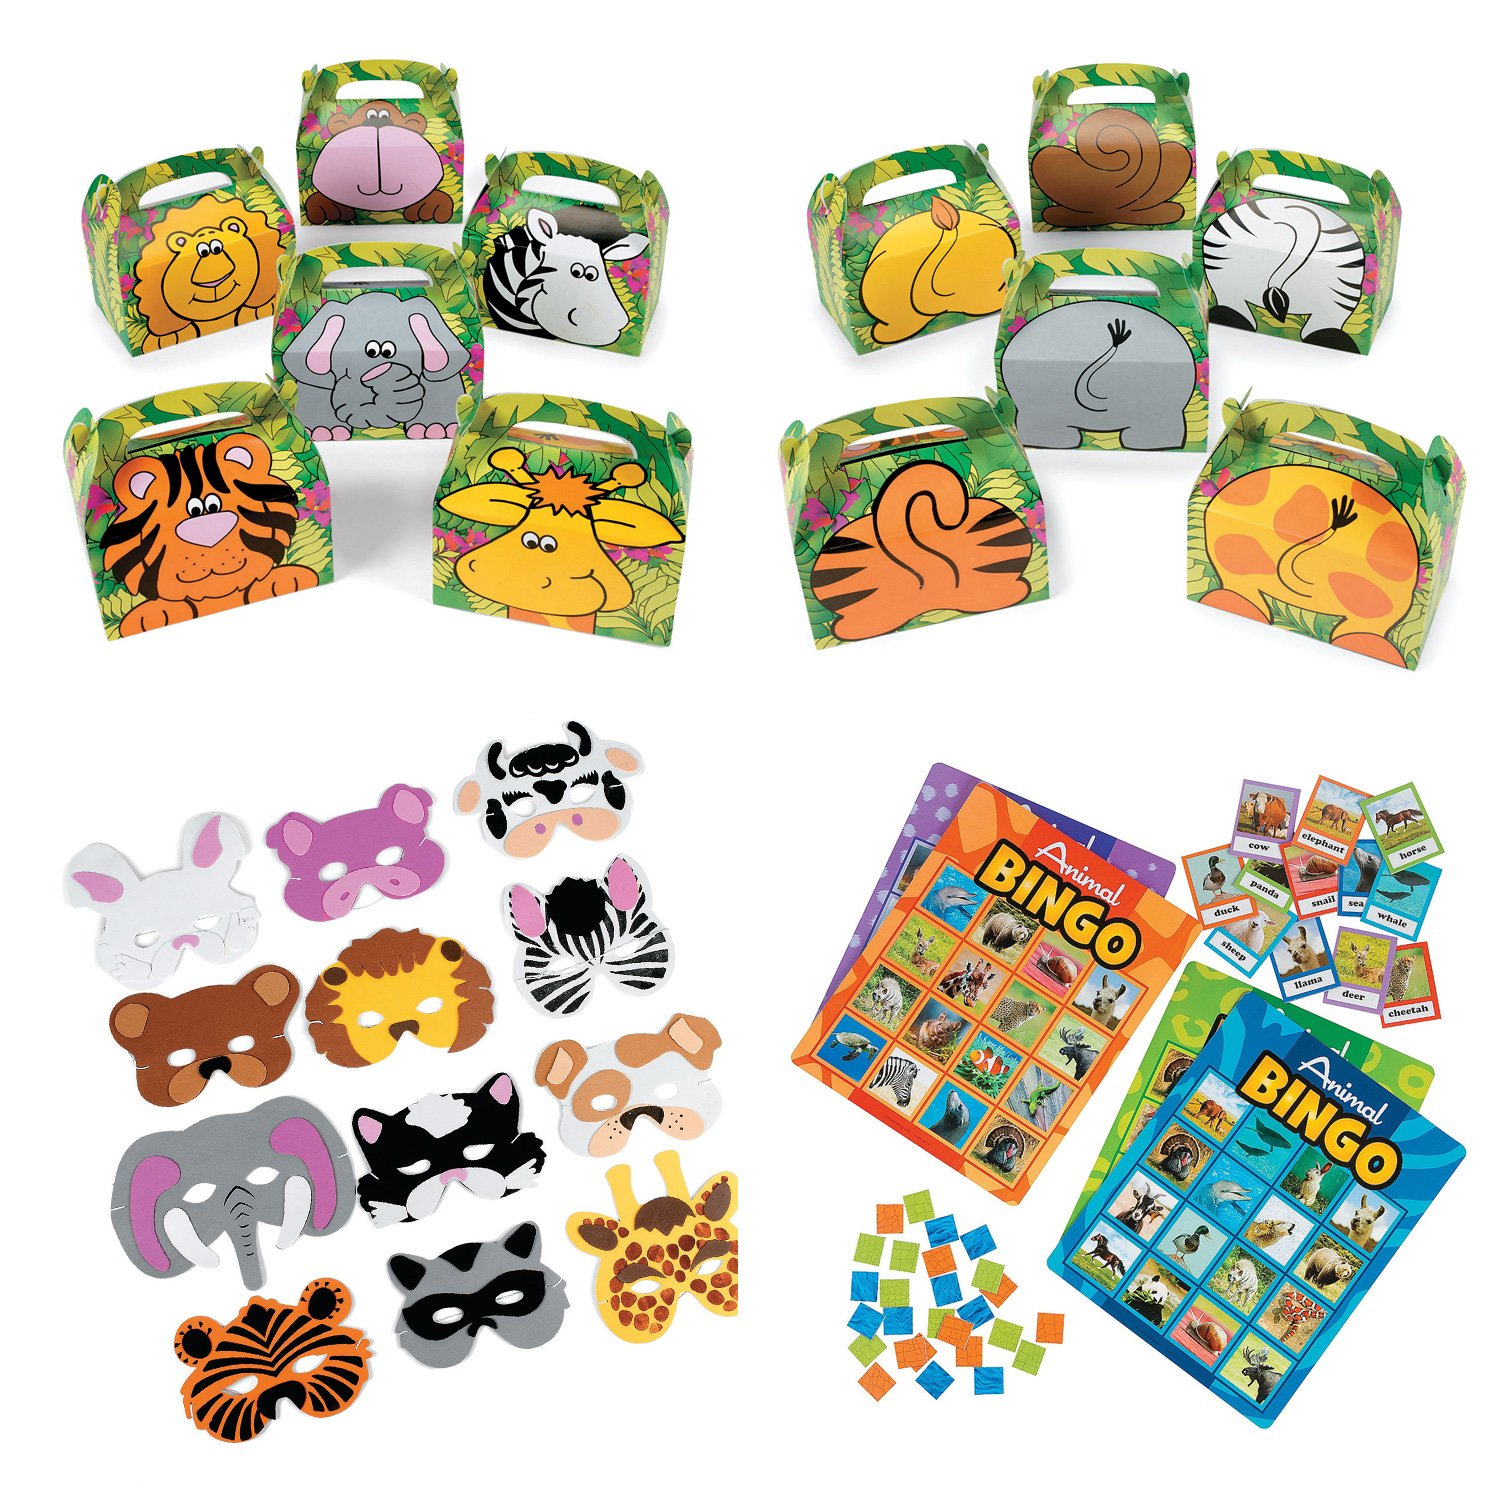 William & Douglas Animal Party Bundle | Party Supplies Games, Favors & Giveaways for Zoo Animal, Jungle and Safari Theme Birthday Party | Animal Recognition Bingo Game, Treat Boxes & Animal Masks by William & Douglas